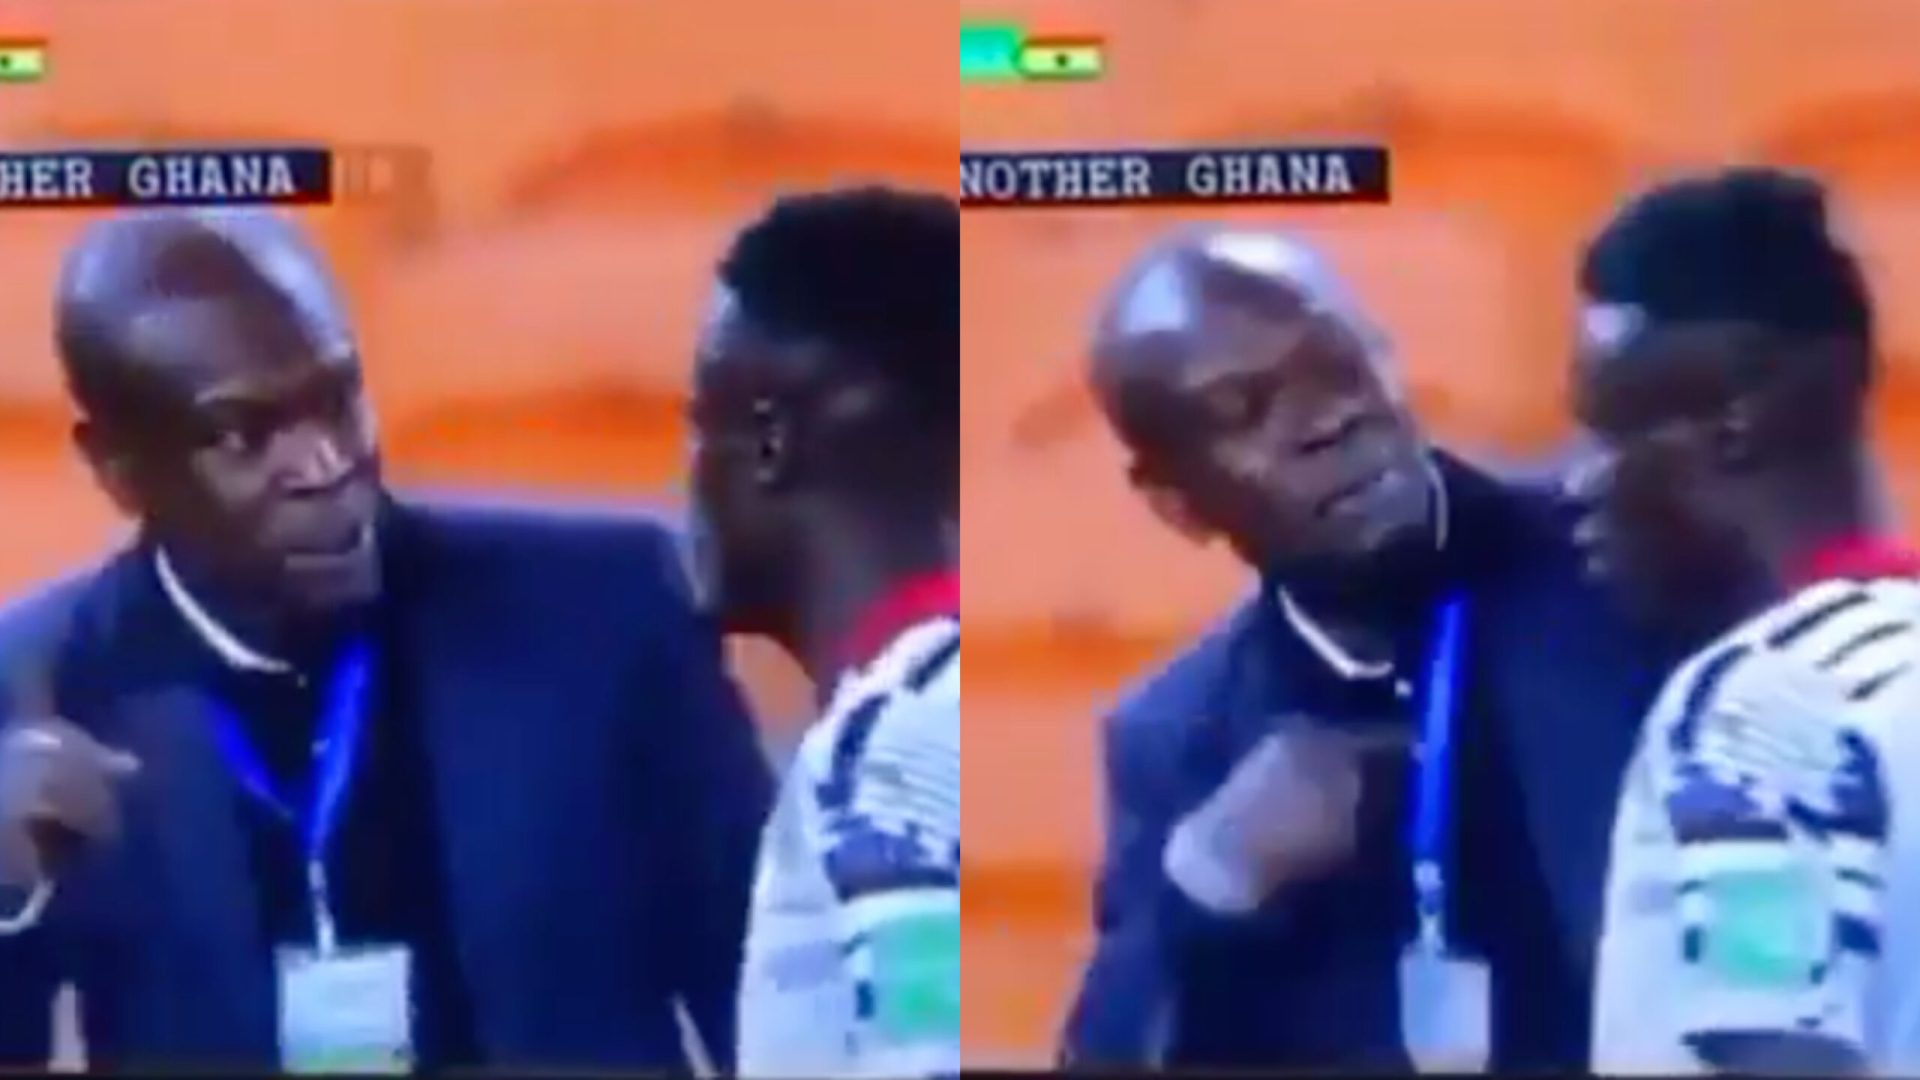 Revealed: Video evidence of CK Akonnor warning striker Kwame Poku to score against South Africa or risk playing for Blacks Stars again